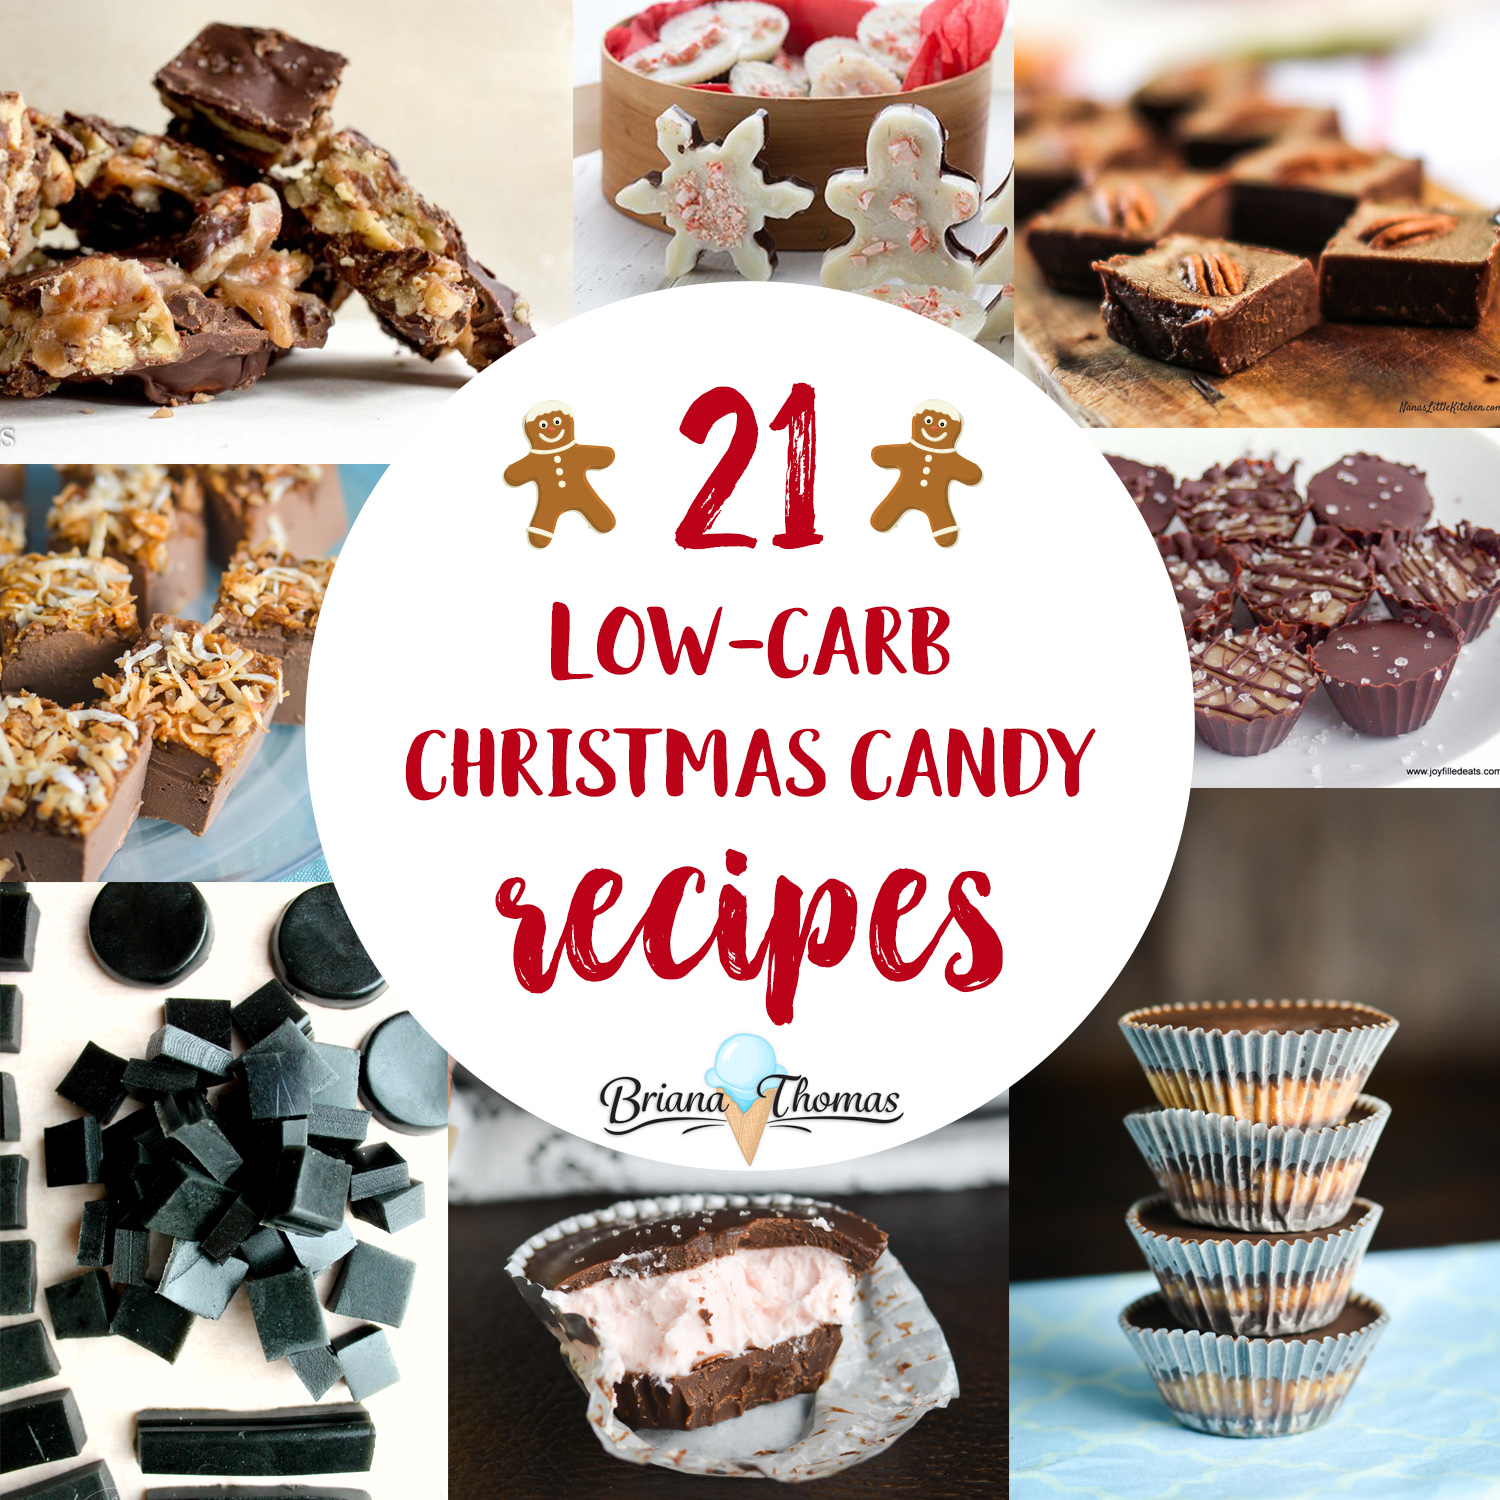 Check out this post for 21 low-carb Christmas candy recipes! All of them are sugar-free and belong in a THM S or Deep S setting.